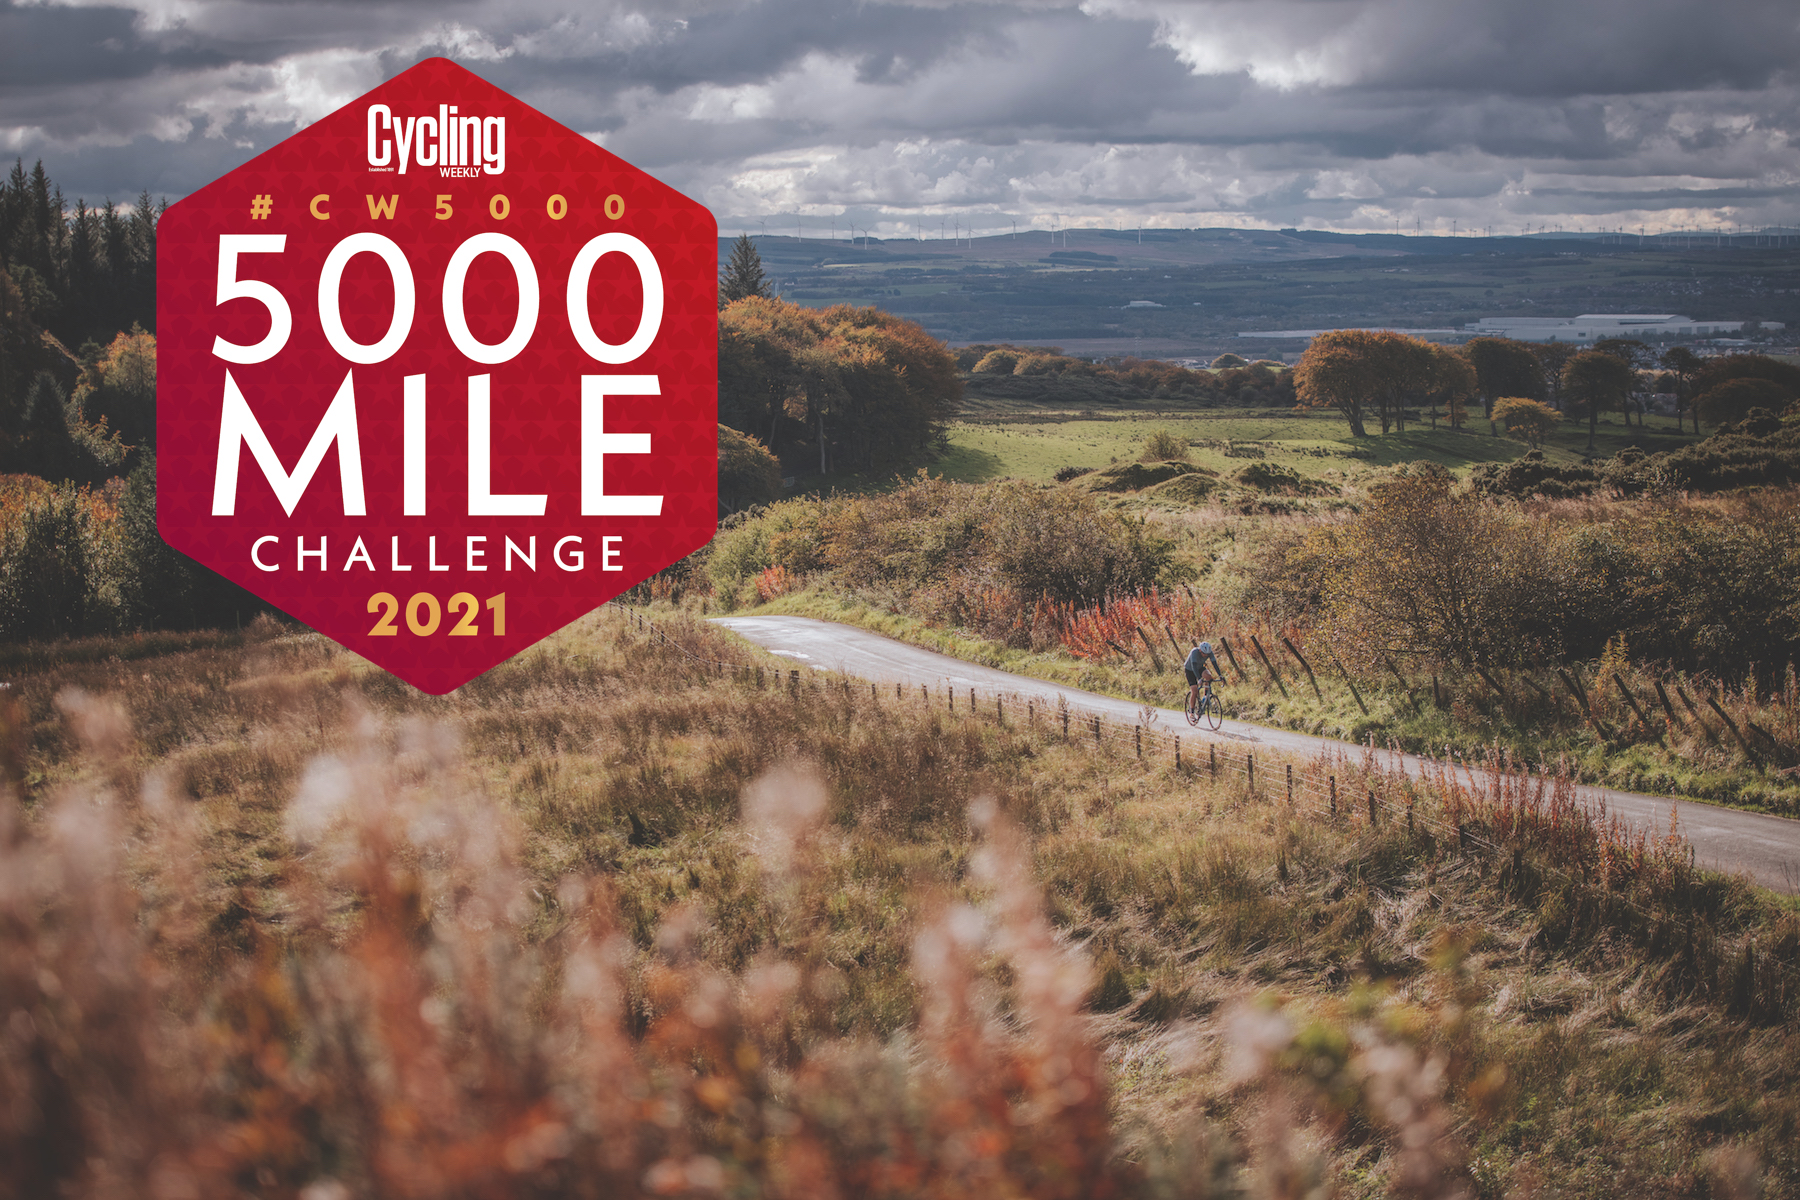 Best routes from the CW5000 riders – Lanarkshire calling